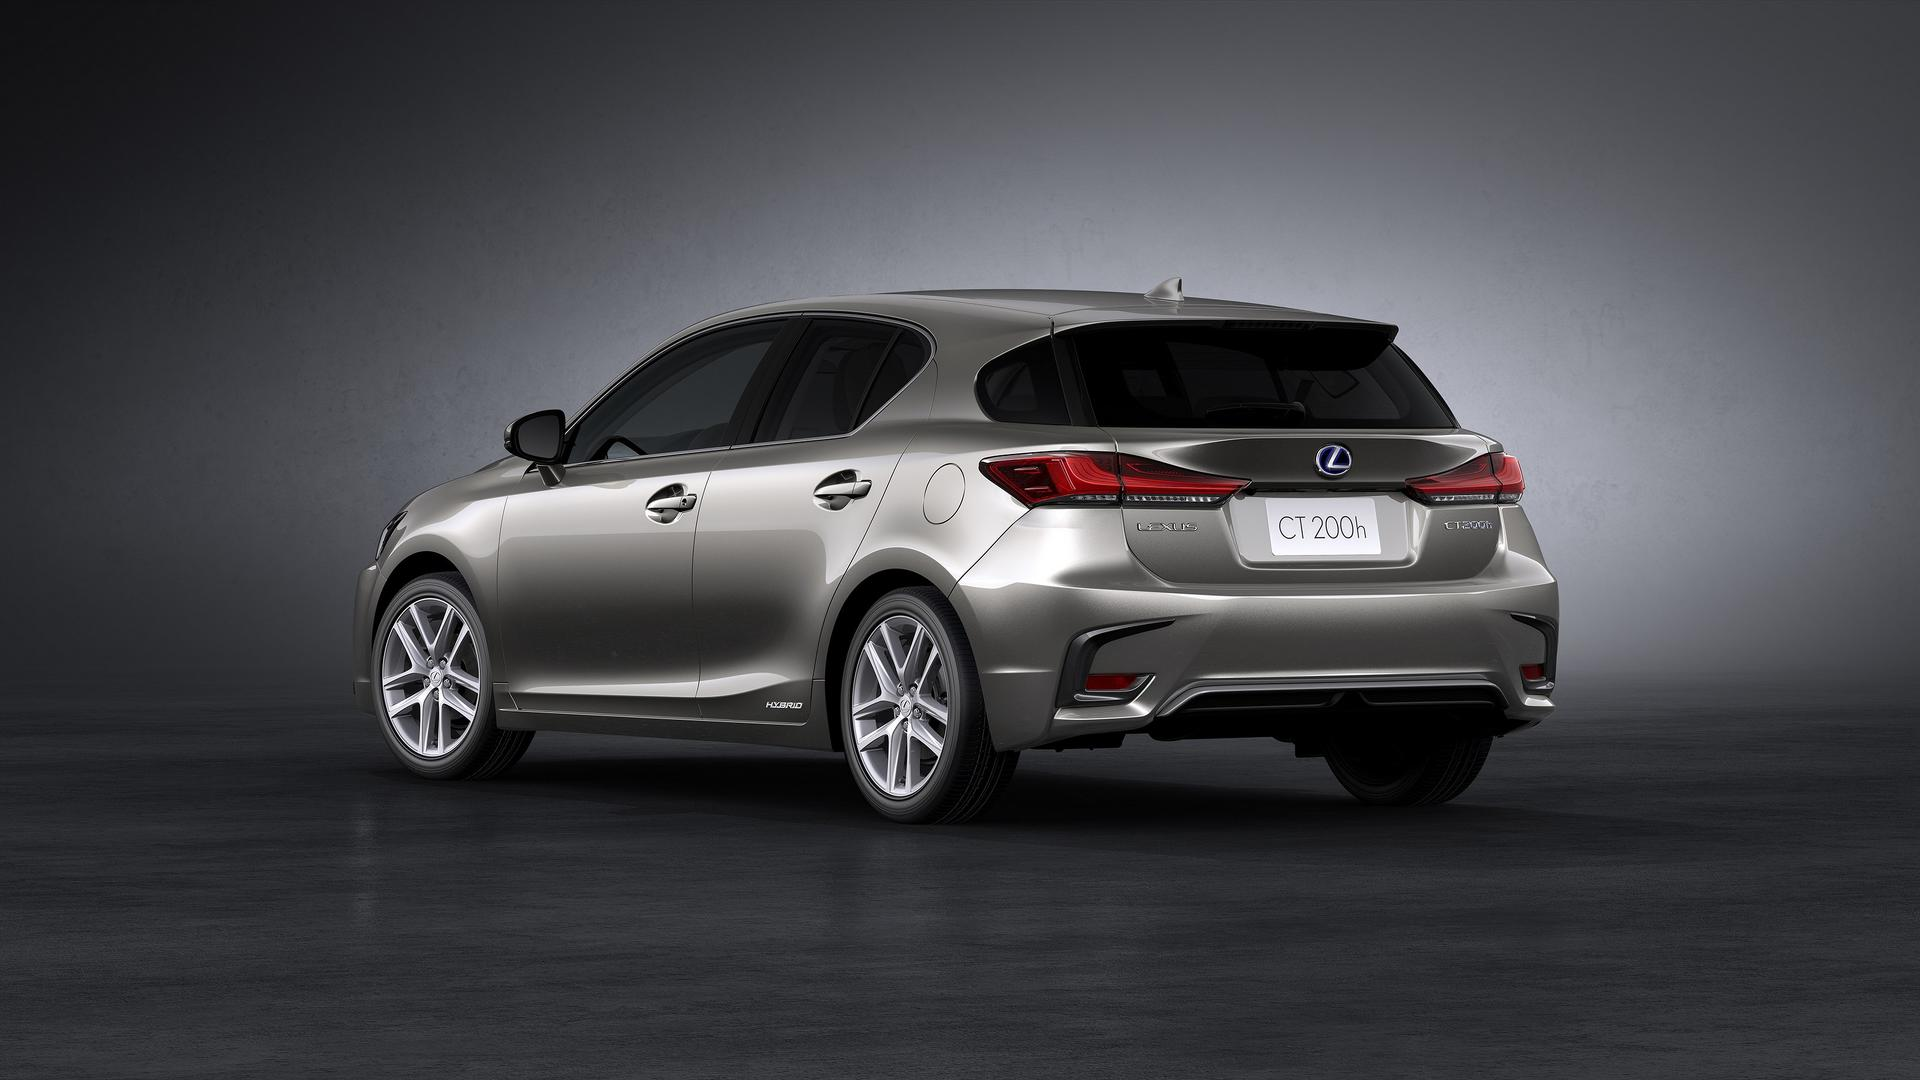 2017 Lexus CT 200h Rendered To Debut In January 2017